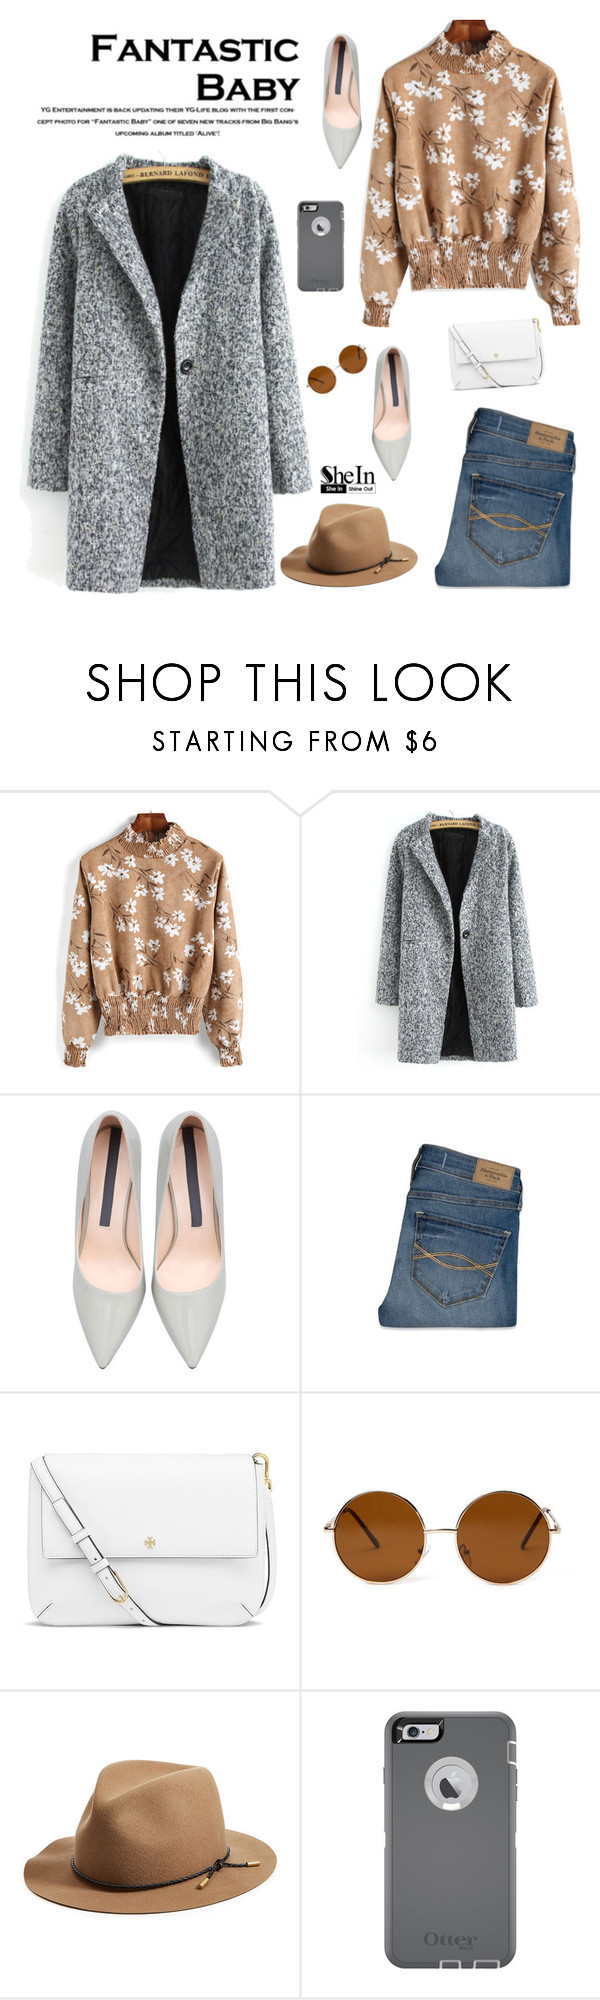 """""""Fantastic baby"""" by sabinakopic ❤ liked on Polyvore featuring Abercrombie & Fitch, Tory Burch, Forever 21, rag & bone, OtterBox, women's clothing, women, female, woman and misses"""